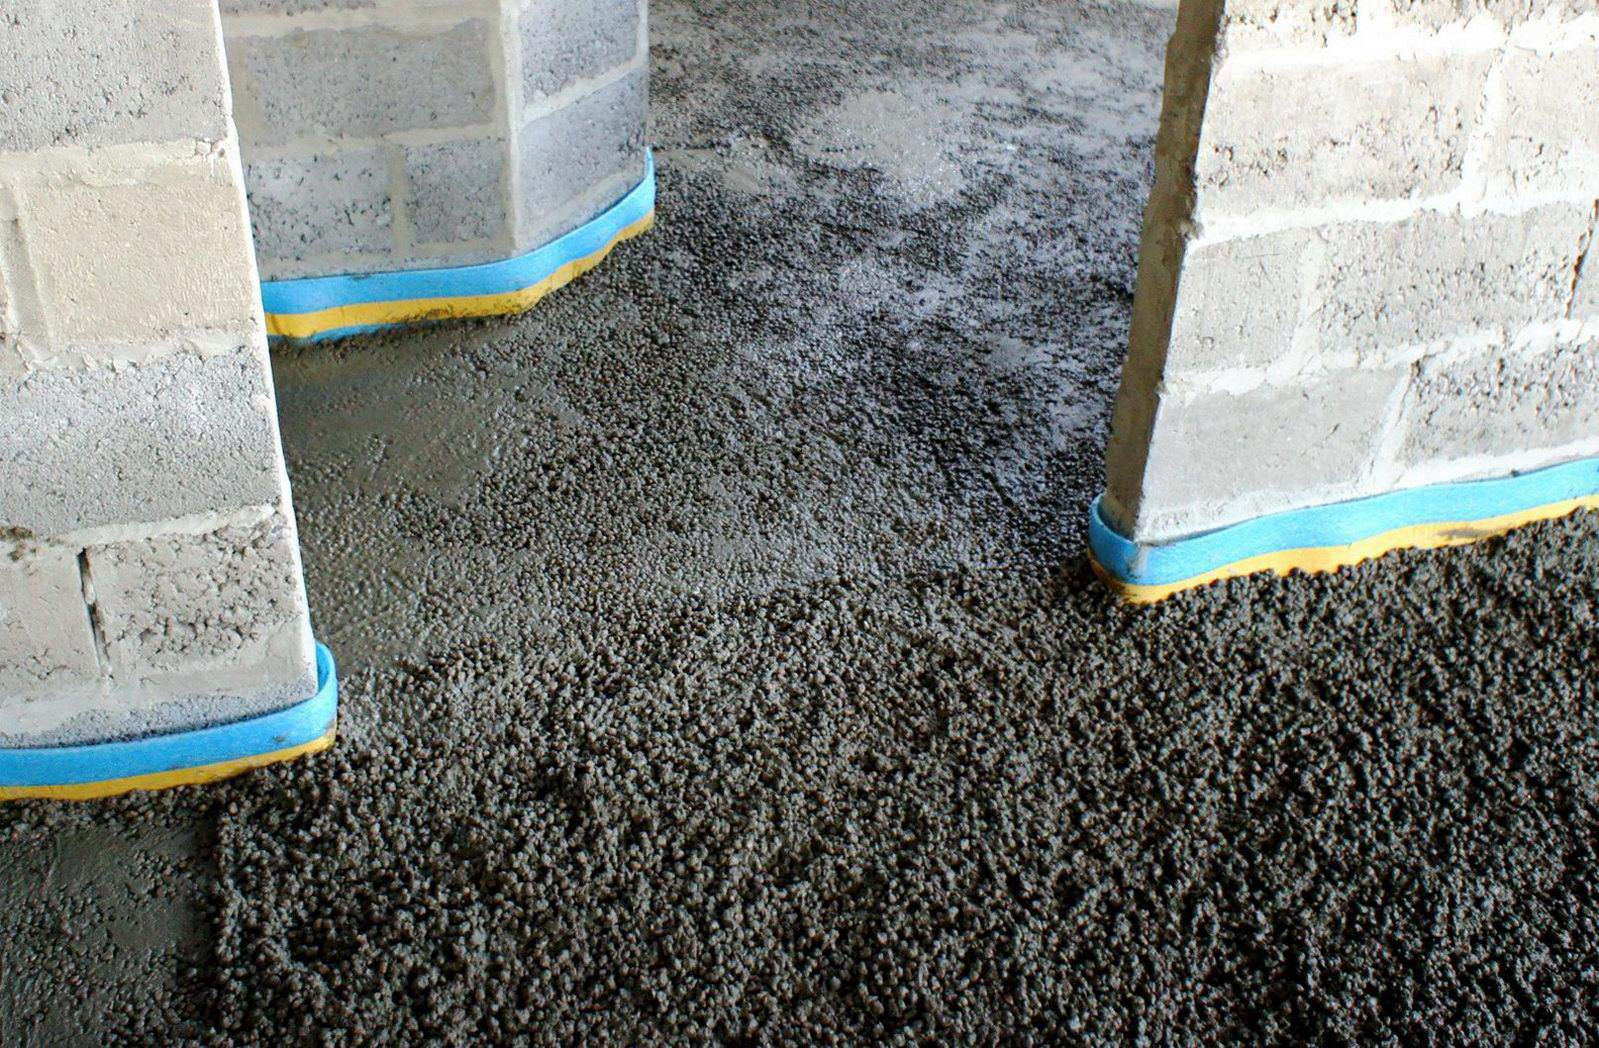 concrete technology Remodeling is a big business today concrete technology offers an alternative to expensive brick, tile or slate learn more today to be a part of this opportunity.